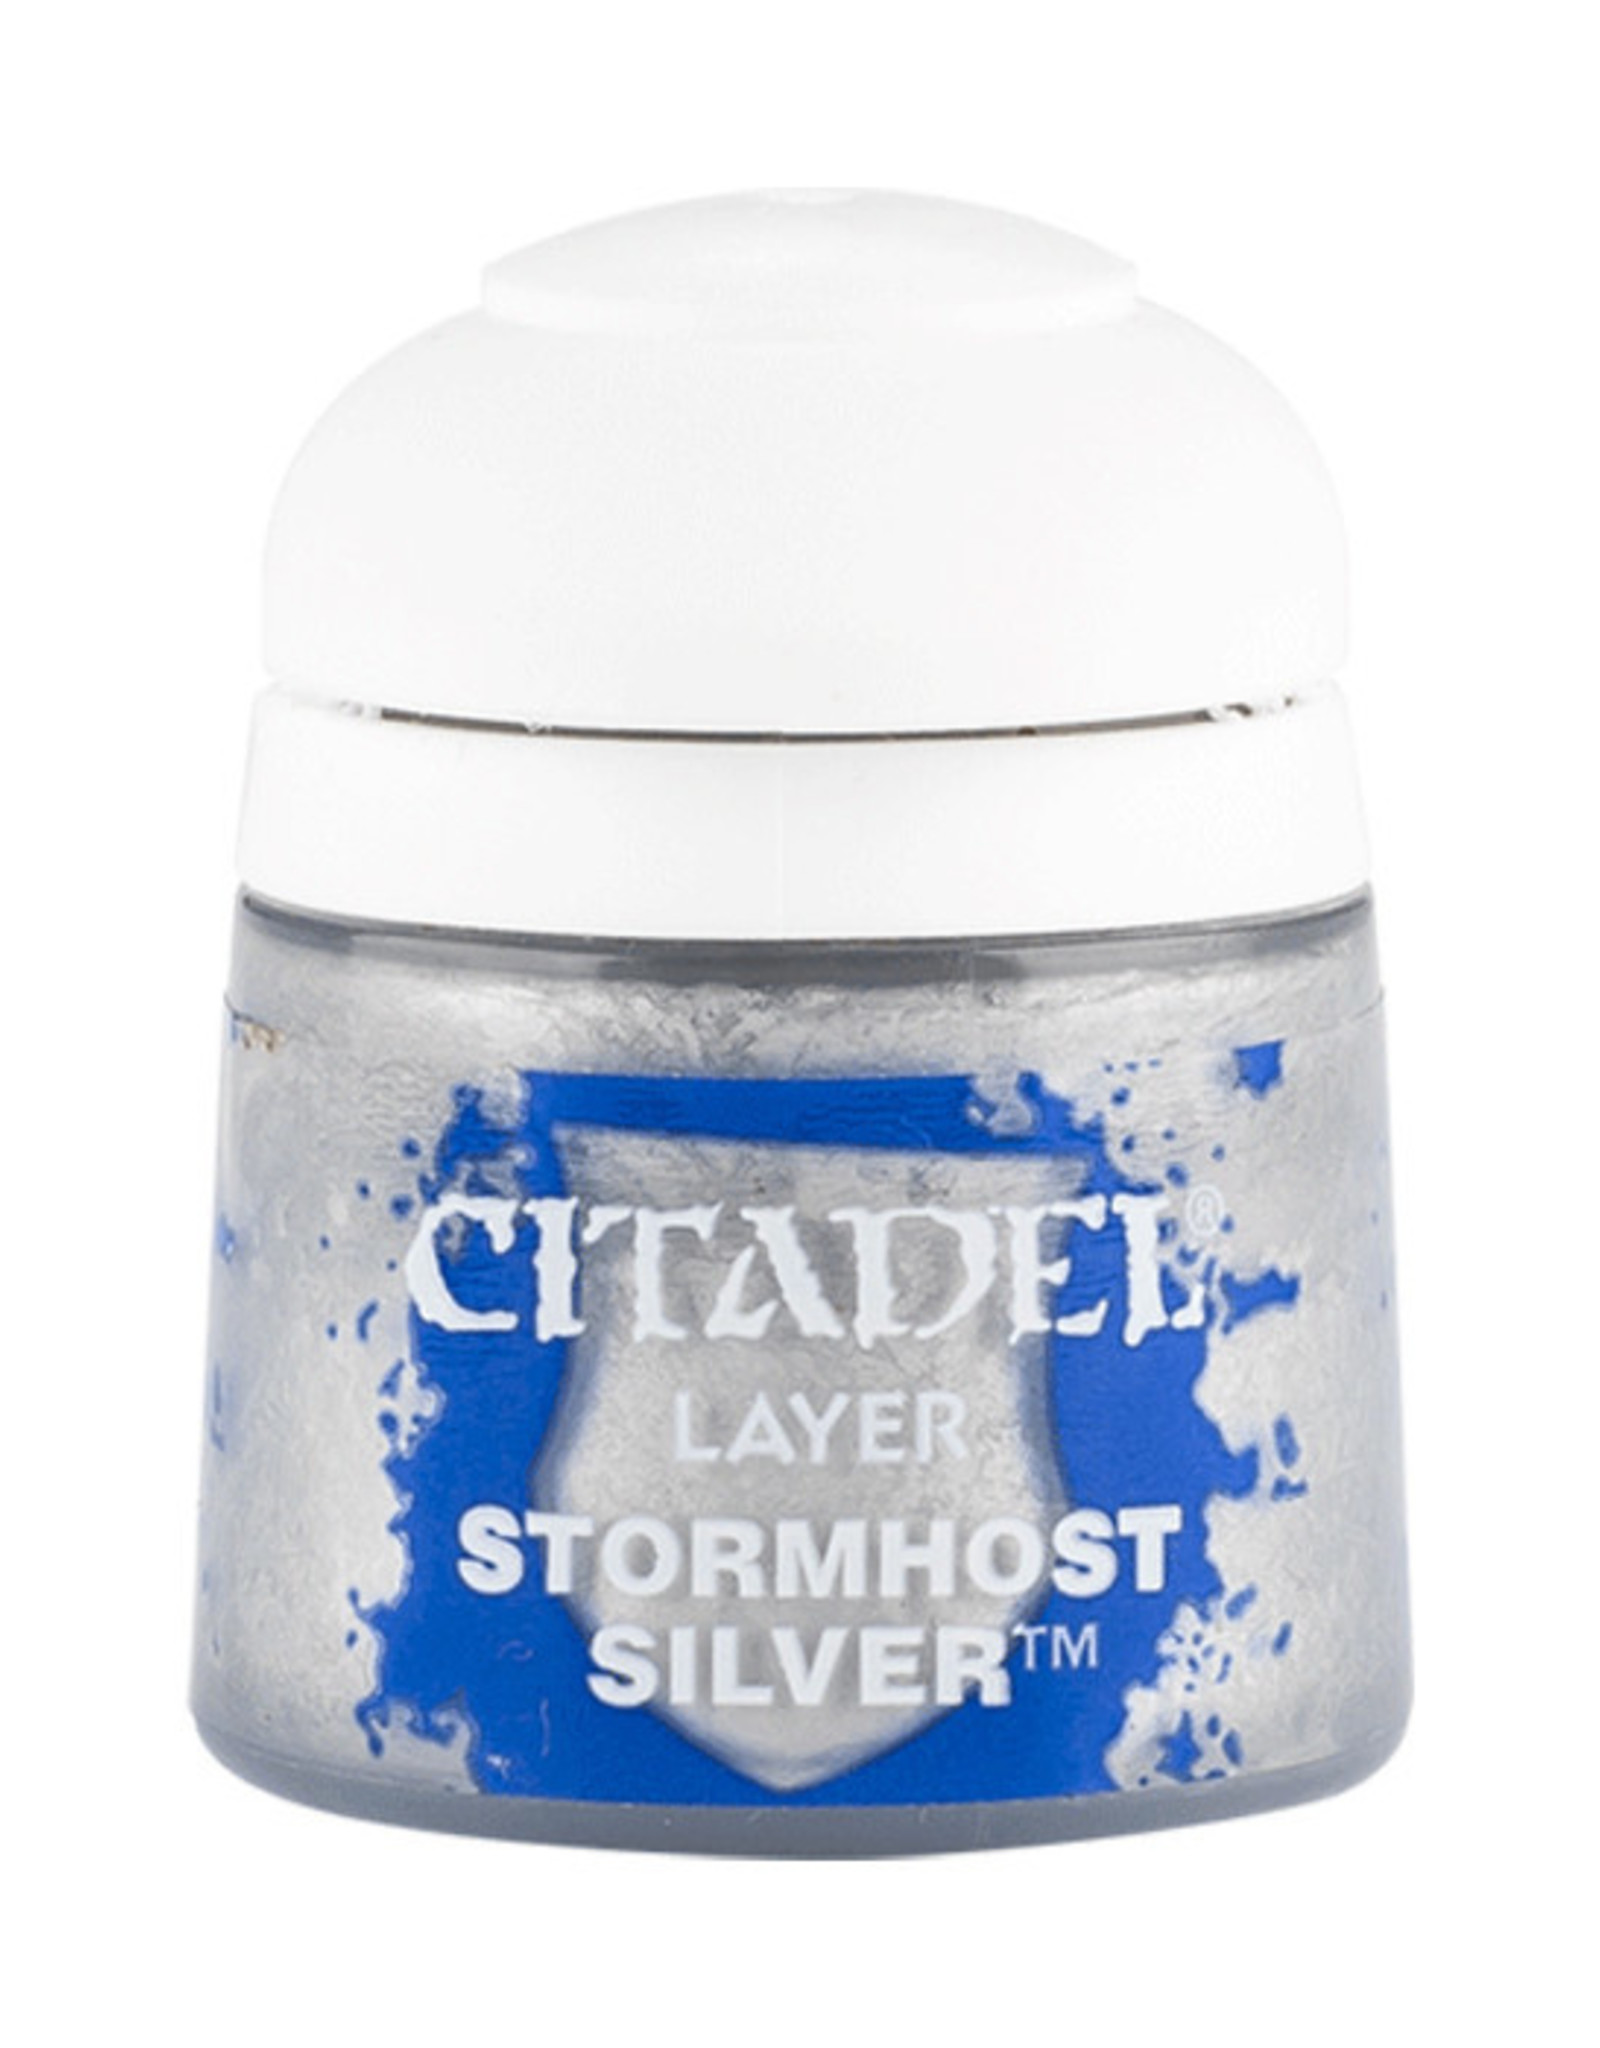 Citadel Citadel Colour: Layer - Stormhost Silver